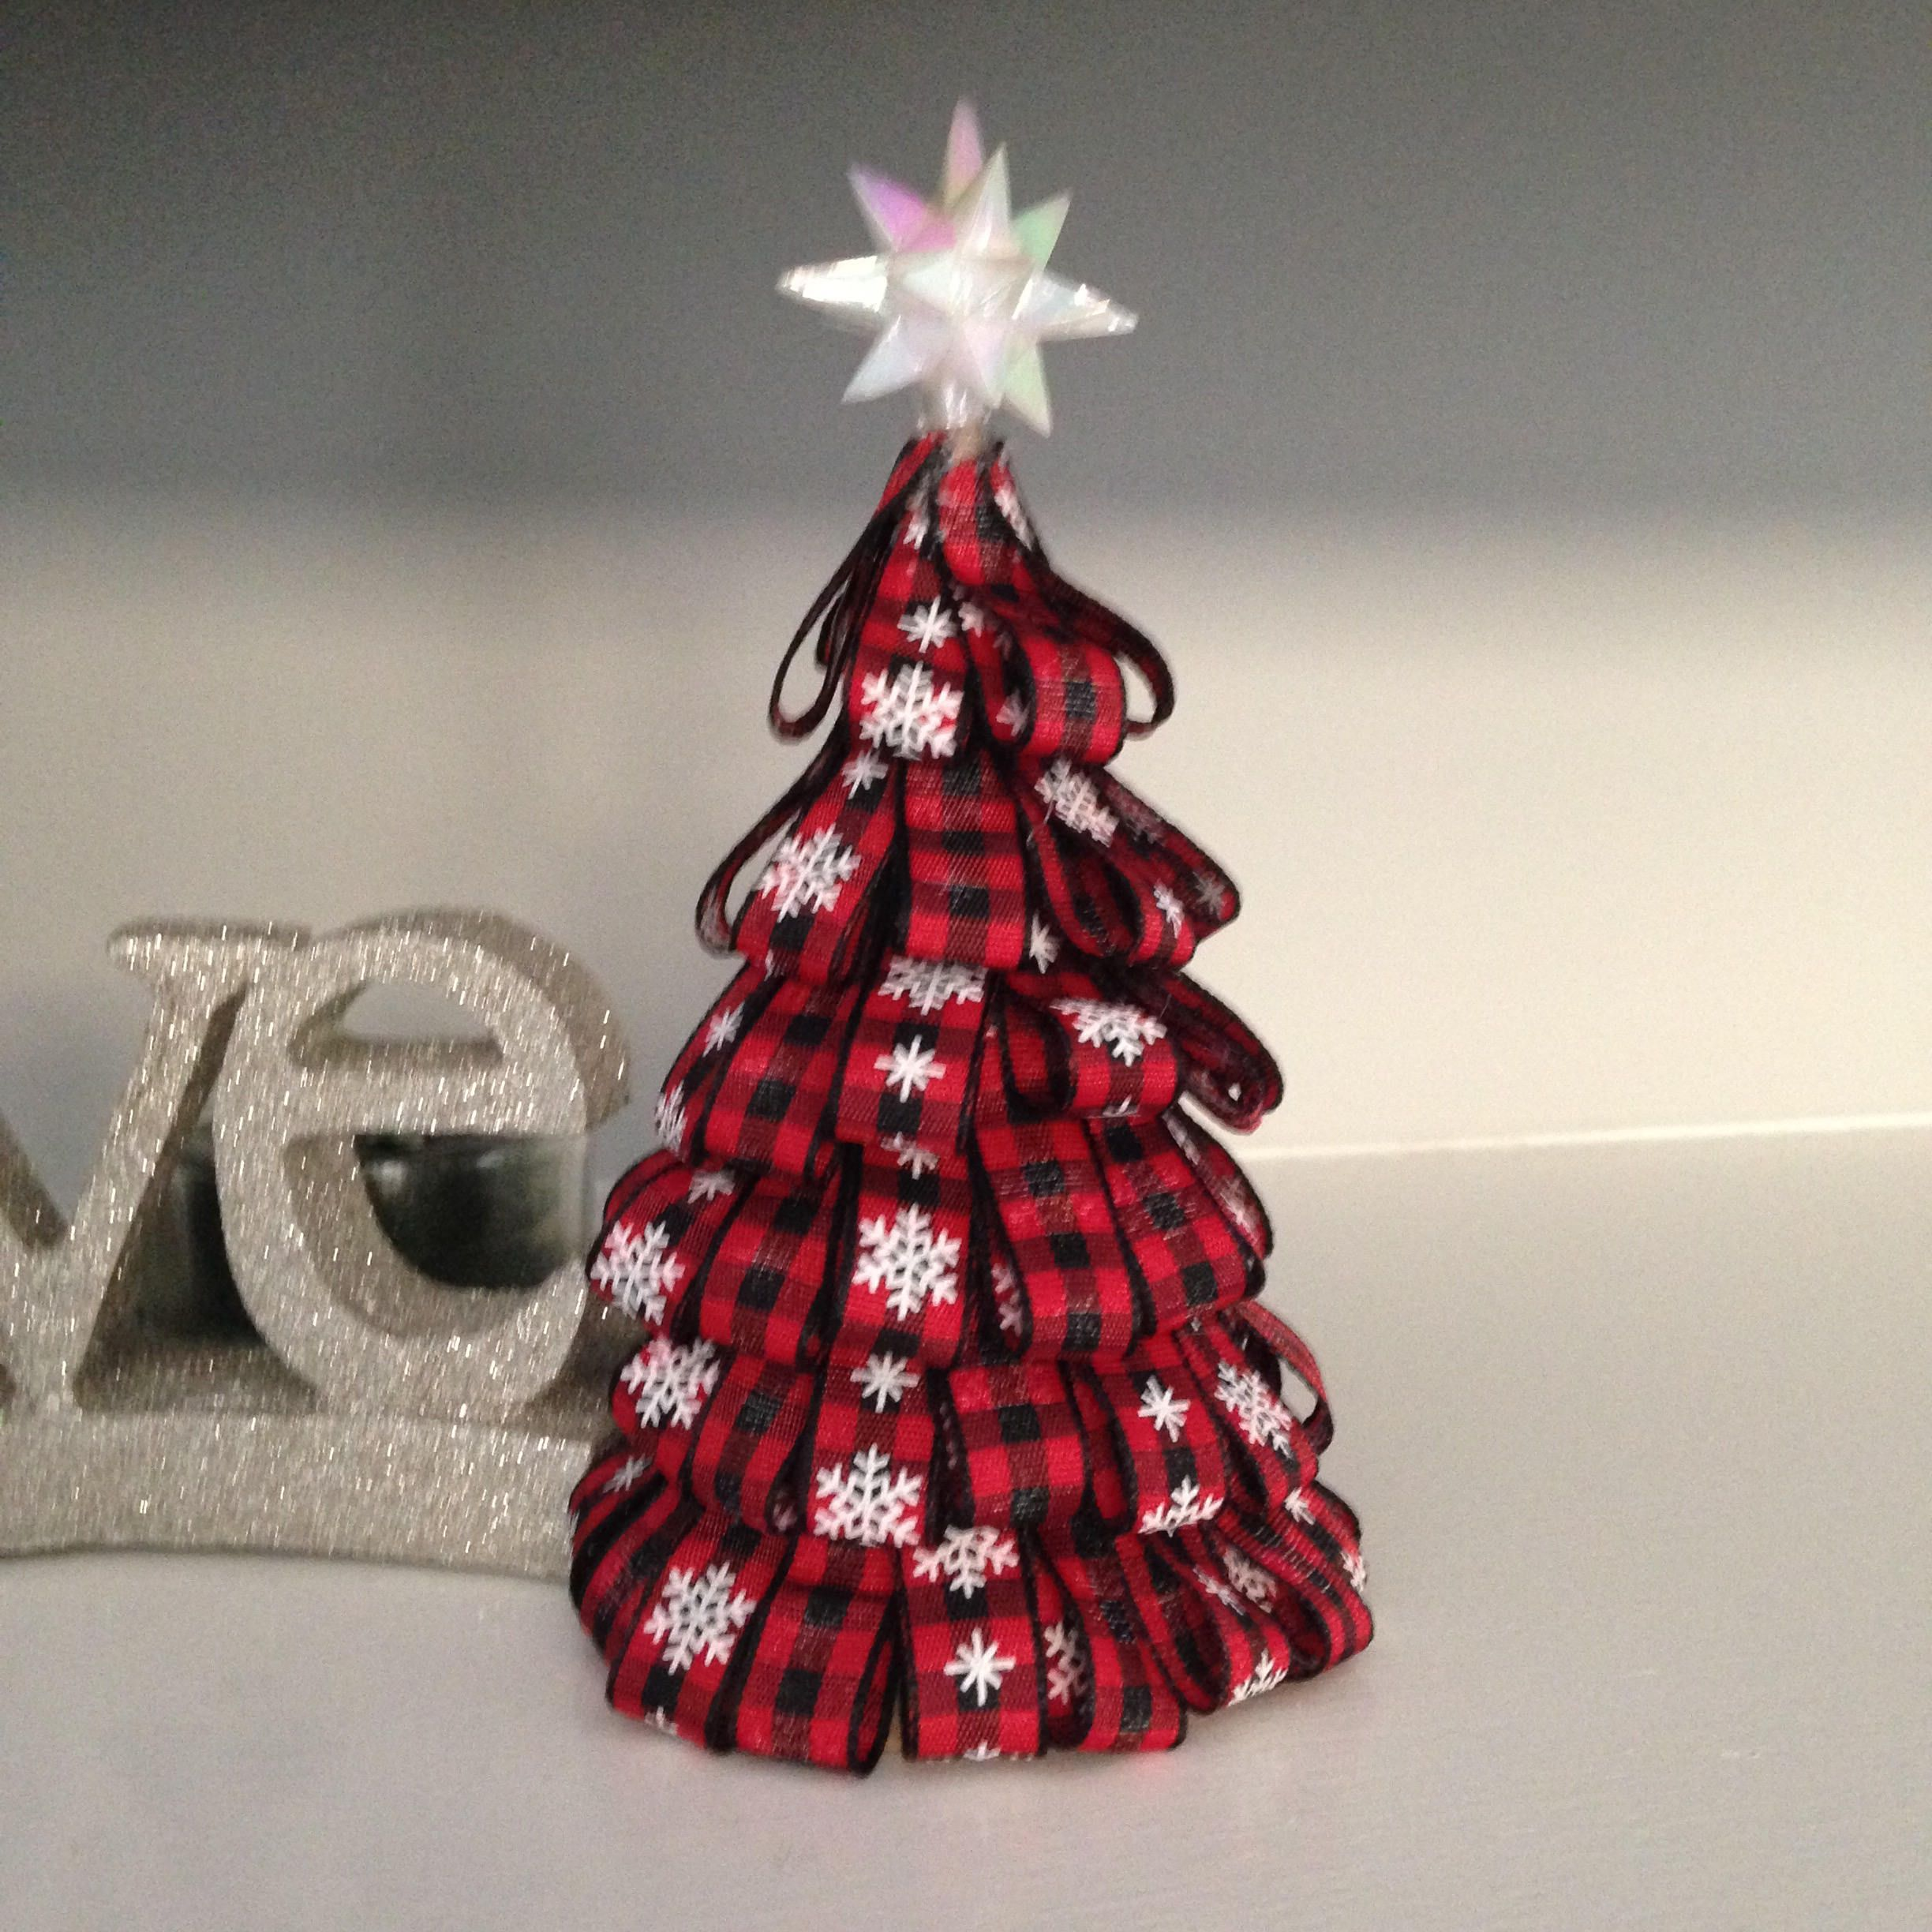 Ribbon tree with your choice of all buffalo plaid, alternating buffalo plaid and snow flake print on plaid or all snow flake buffalo ribbon